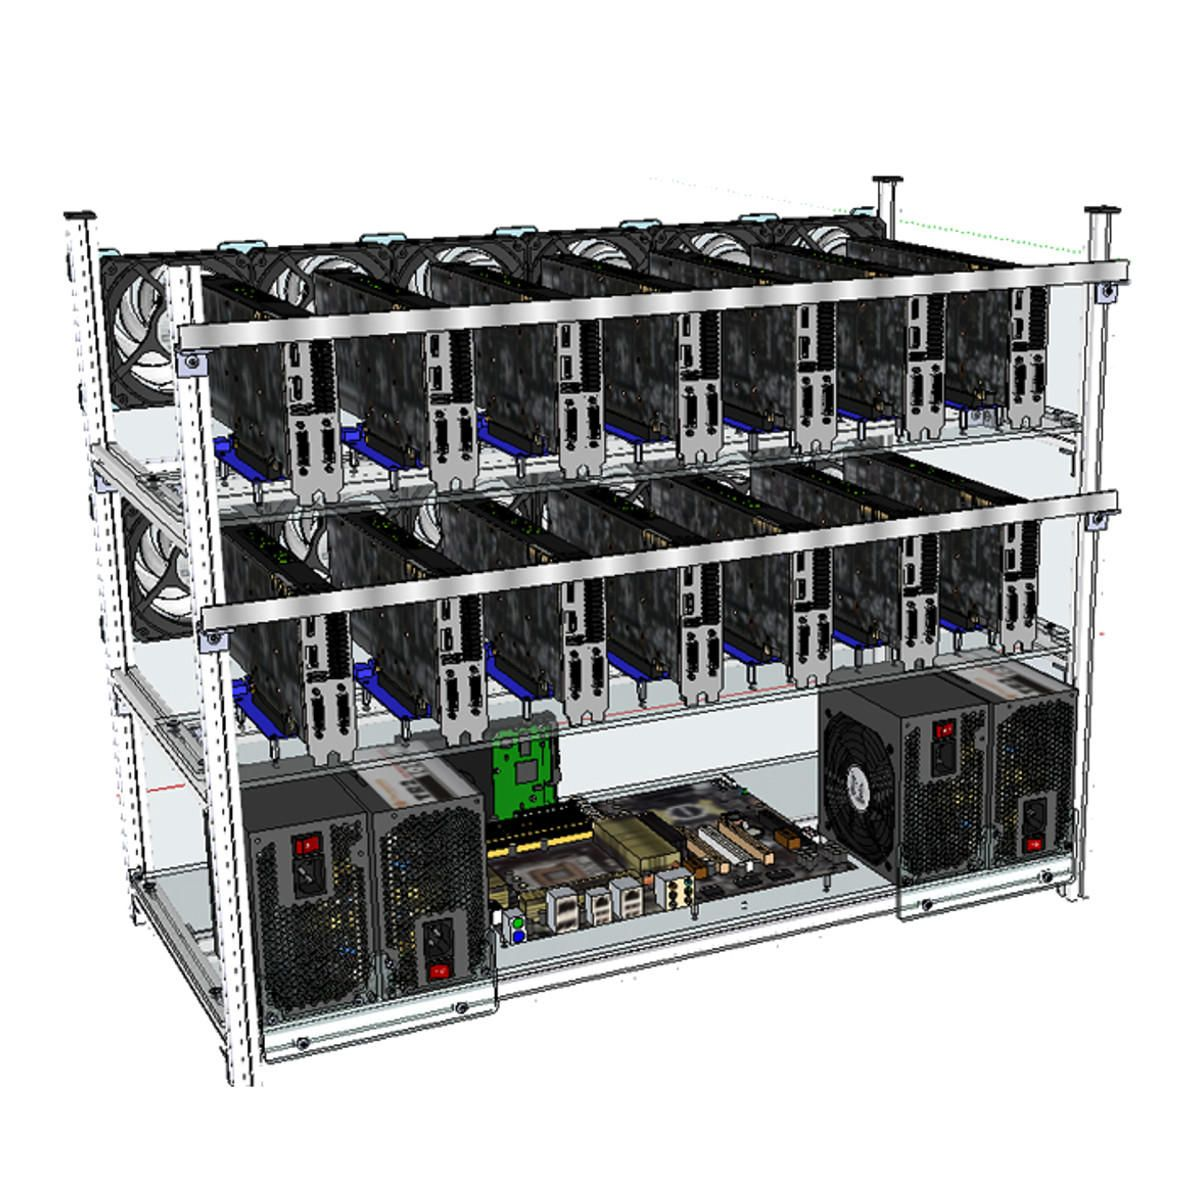 Open Air Mining Frame Rig 14 Gpu Stackable Case With 12 Led Fans For Eth Zcash Electrical Equipment Supplies From Industrial Scientific On Banggood Com